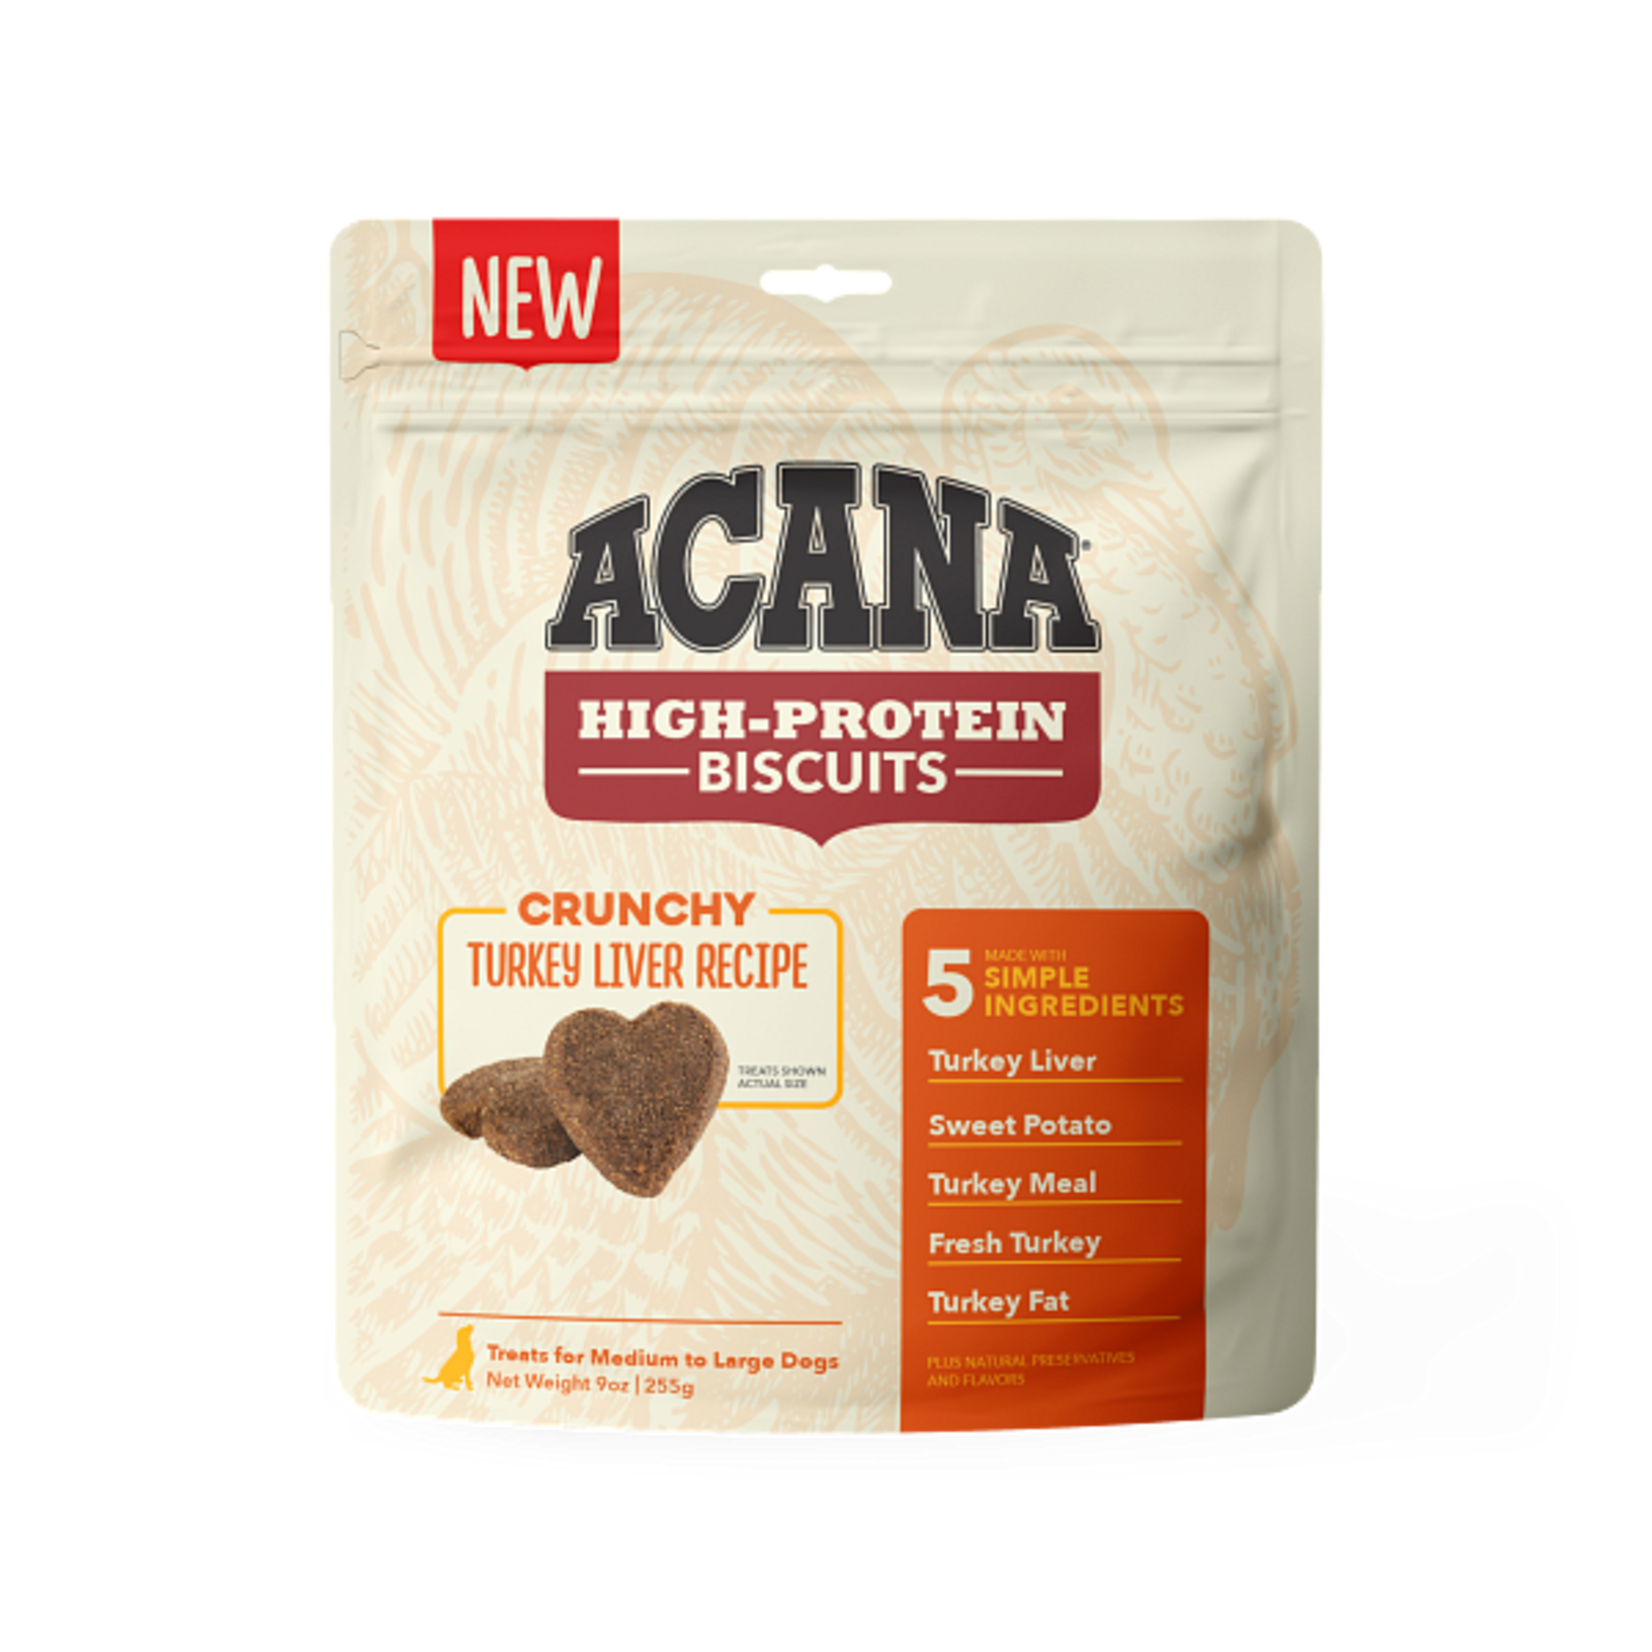 Champion Pet Foods Acana High-Protein Biscuits Turkey Liver Large 9 OZ